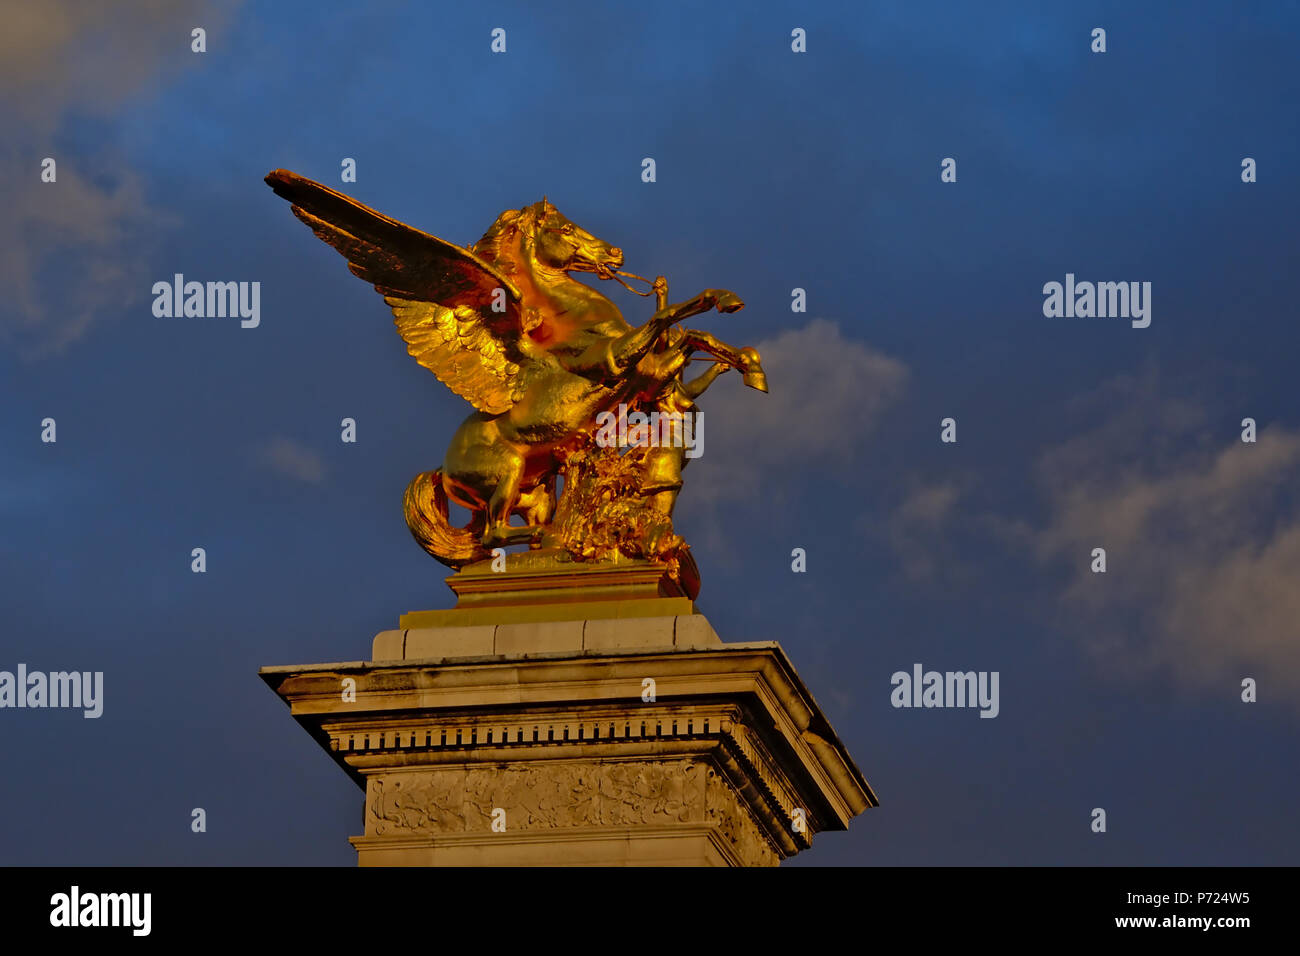 Low angle view on golden pegasus statue on masonry socle in the evening light on Pont Alexandre III bridge in Paris; France - Stock Image